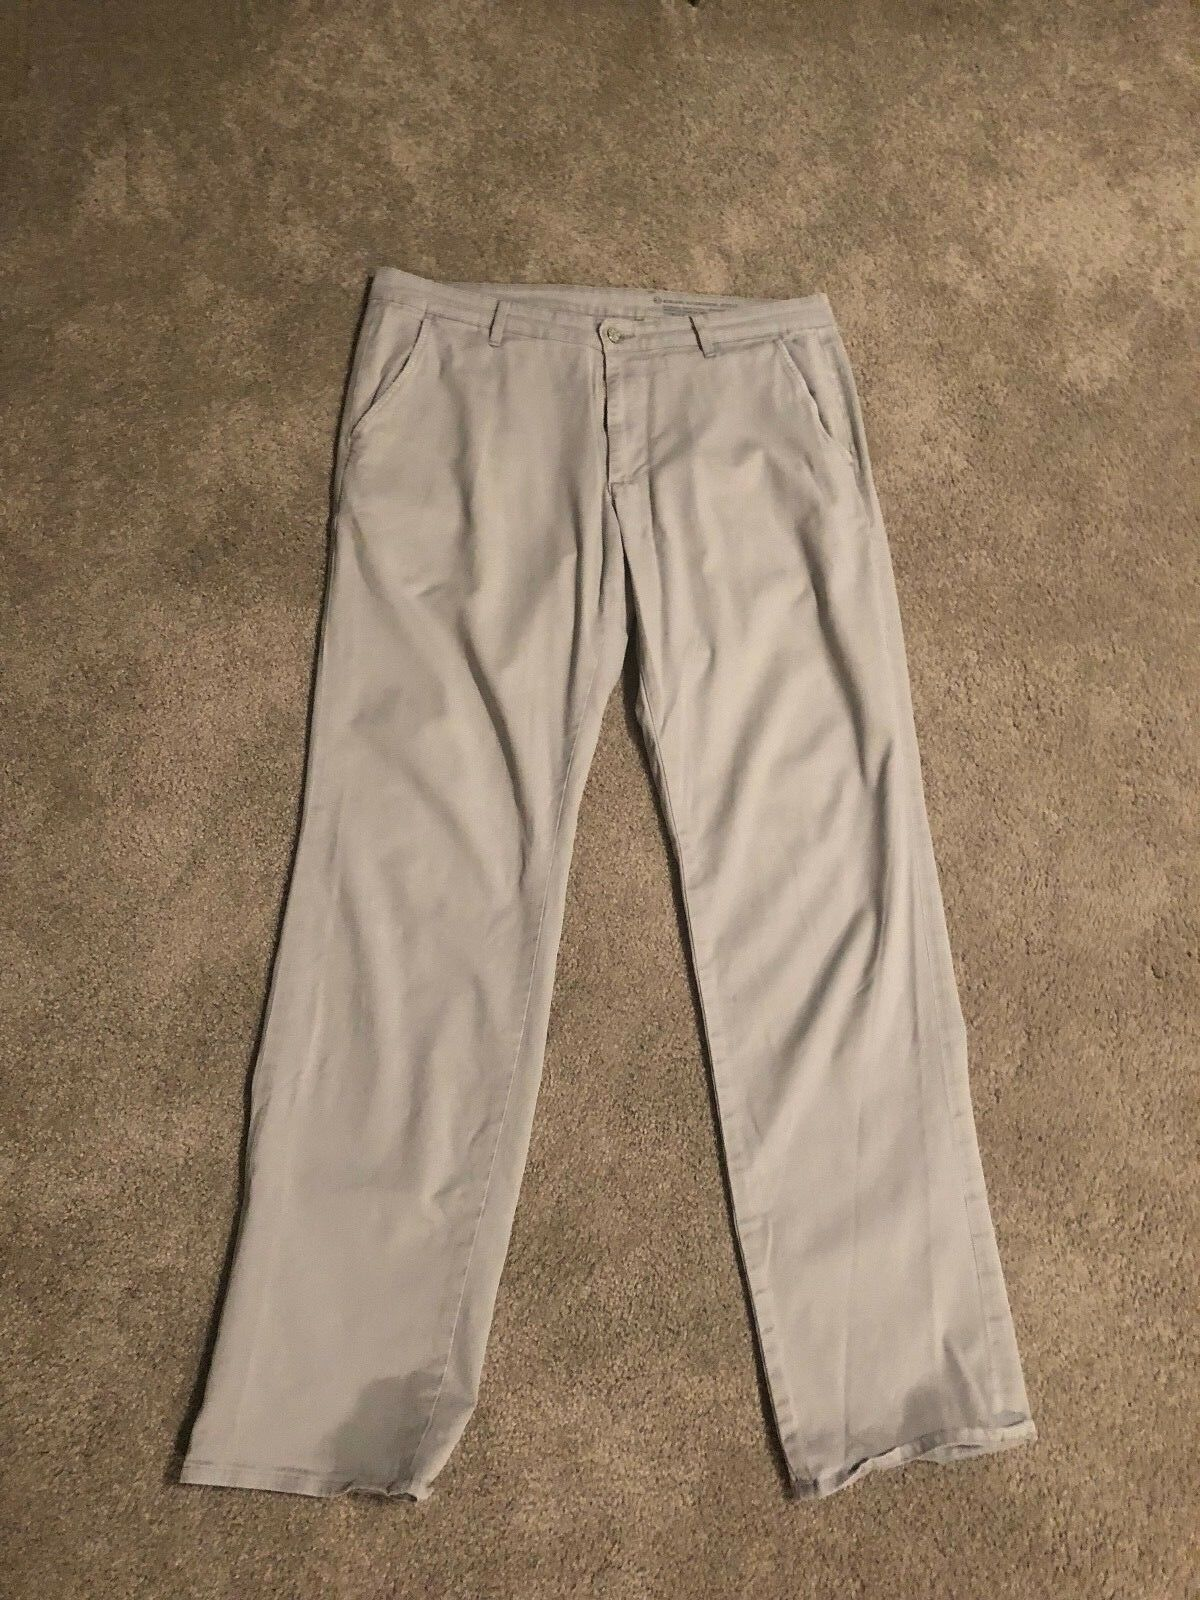 Men's AG Supply Adriano goldschmied Khaki Pants Slim 34 x 34 Grey